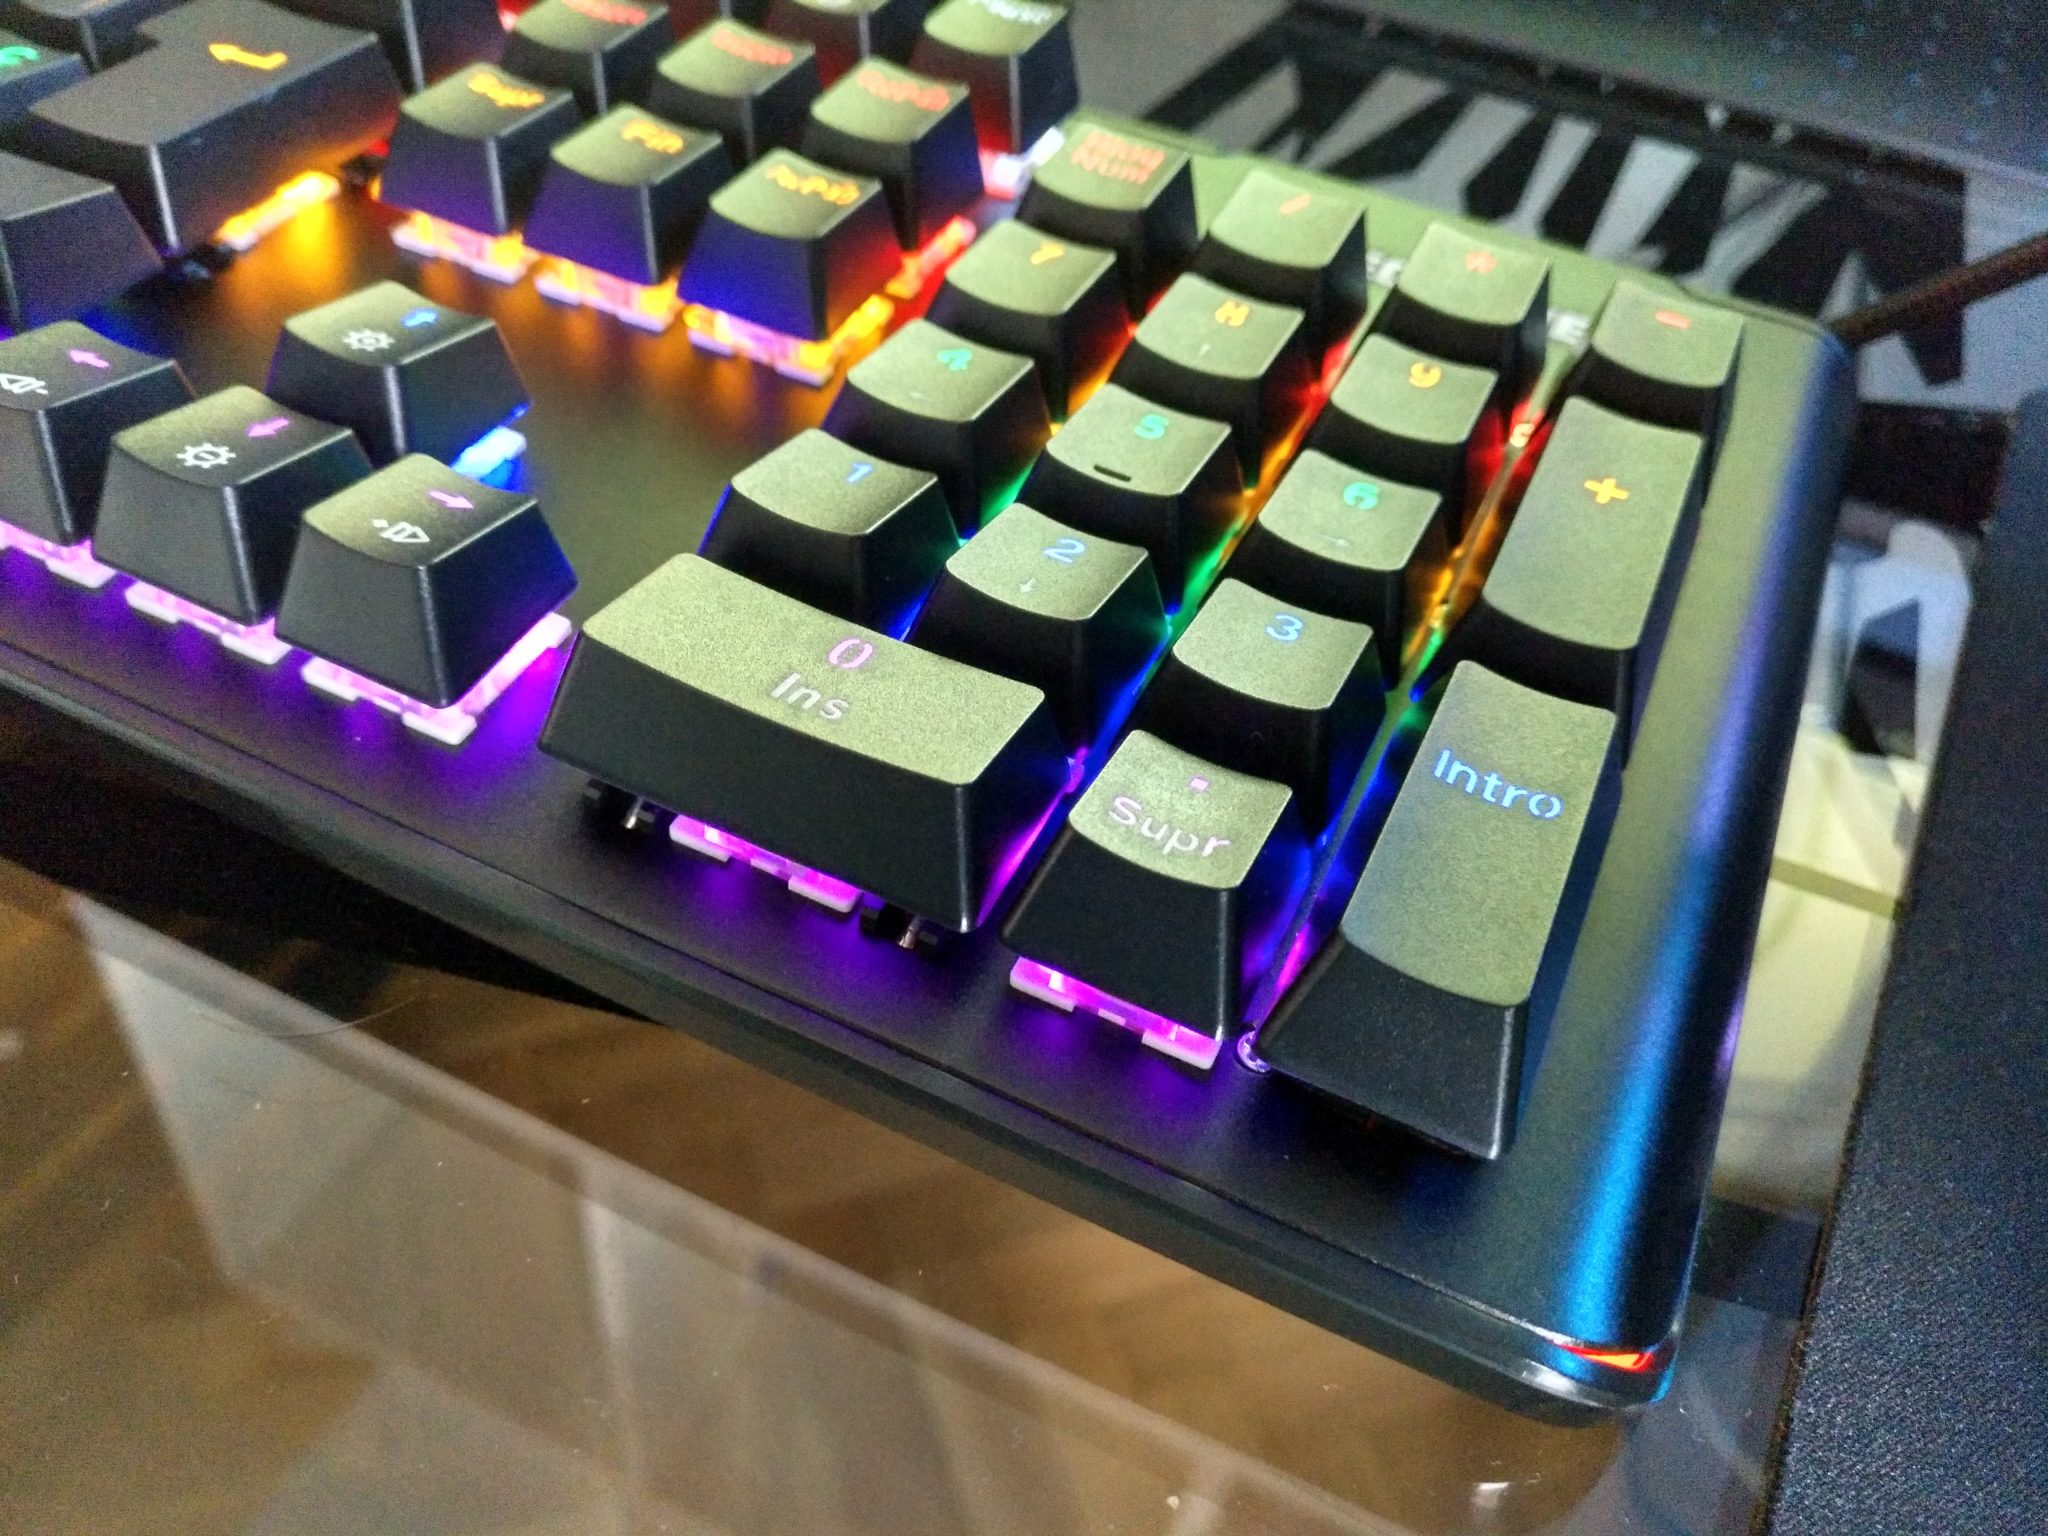 TECKNET Teclado Mecánico Gaming Español con Switches Marrón, Led Multicolor y Reposa-Muñecas Removible - Review en Español